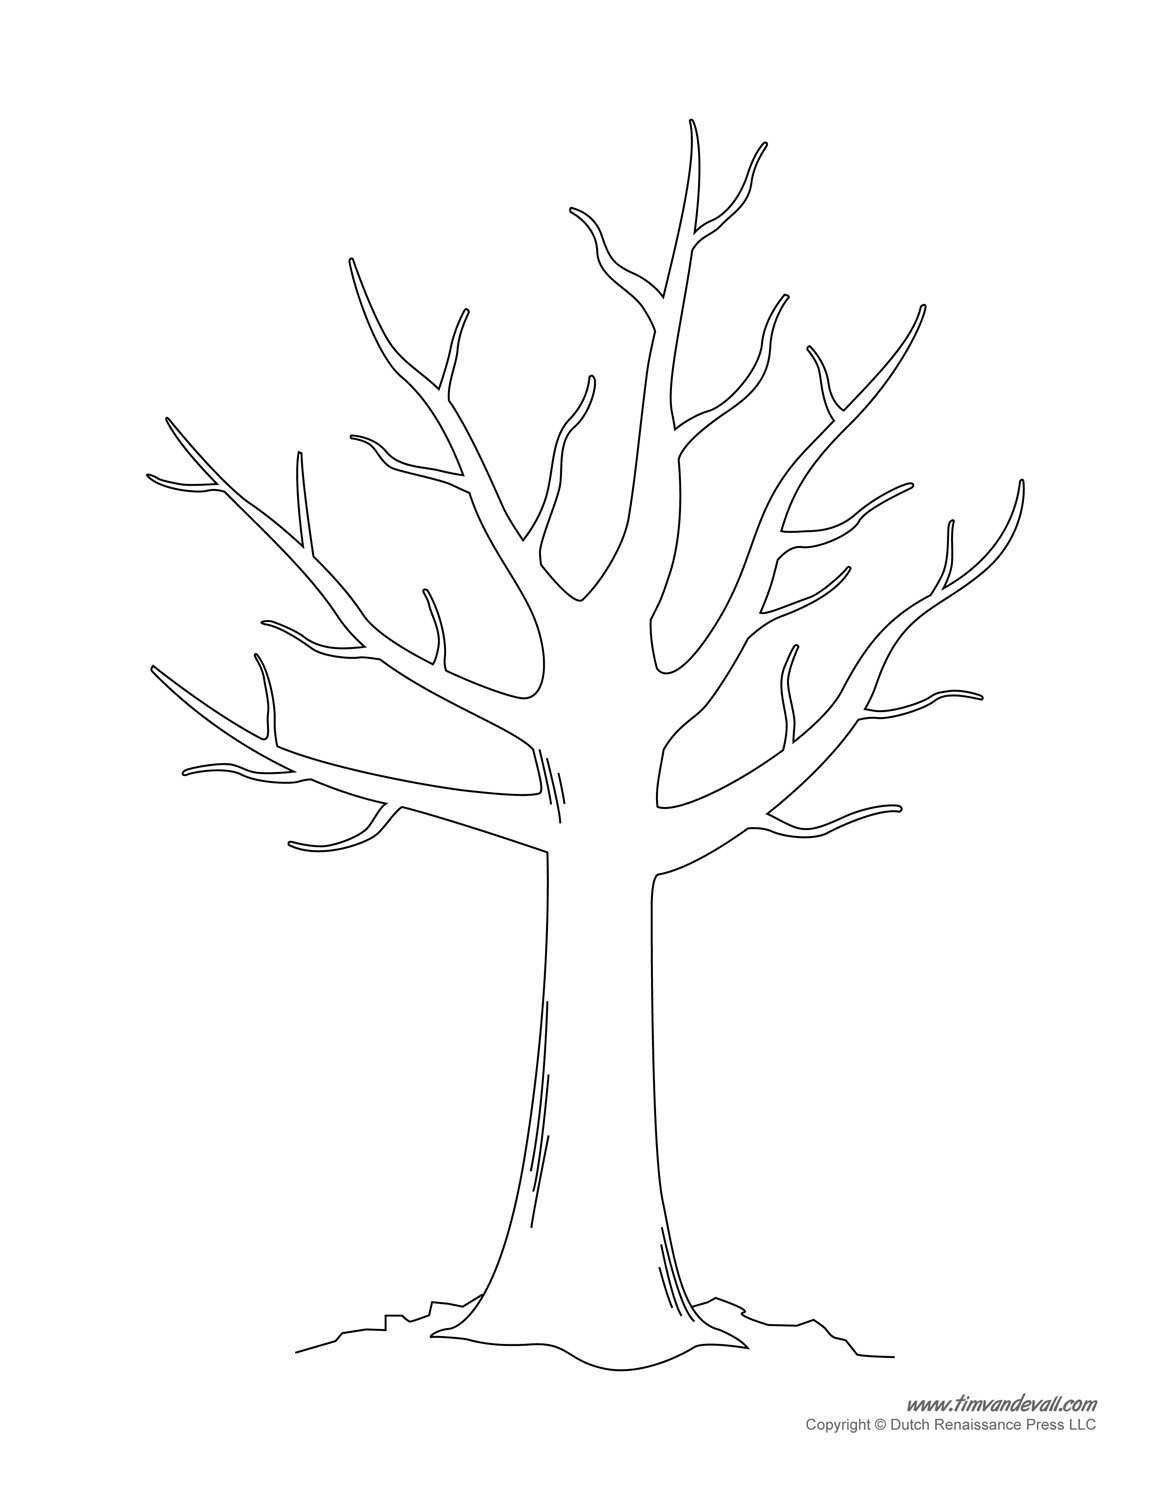 Gravity Falls Coloring Pages Fresh Tree Trunk Coloring Page Salumguilher Tree Coloring Page Leaf Coloring Page Fall Coloring Pages